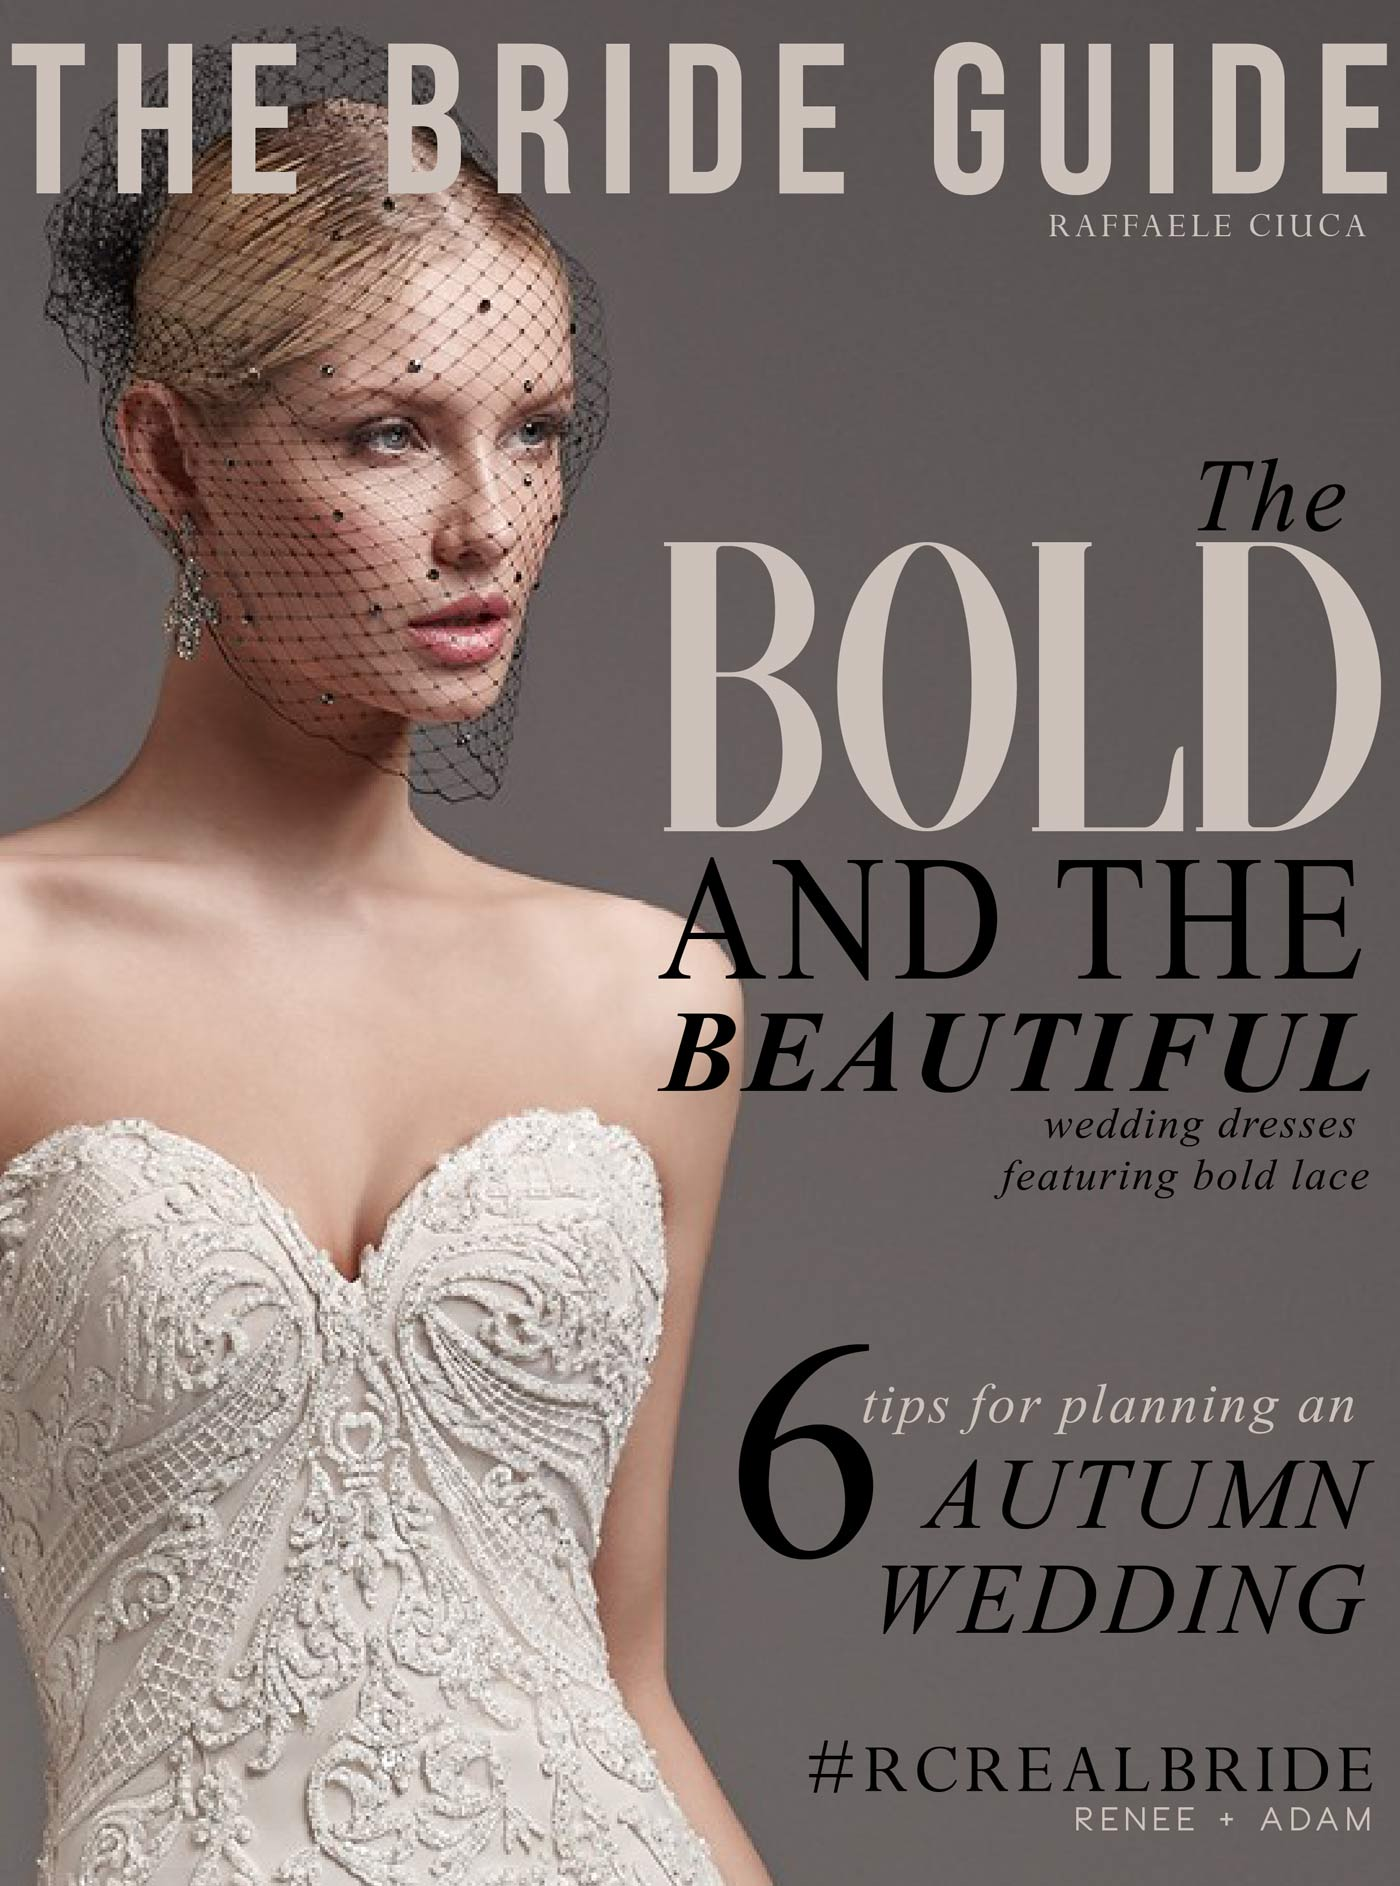 Cover of the Bride Guide featuring wedding dresses with bold lace